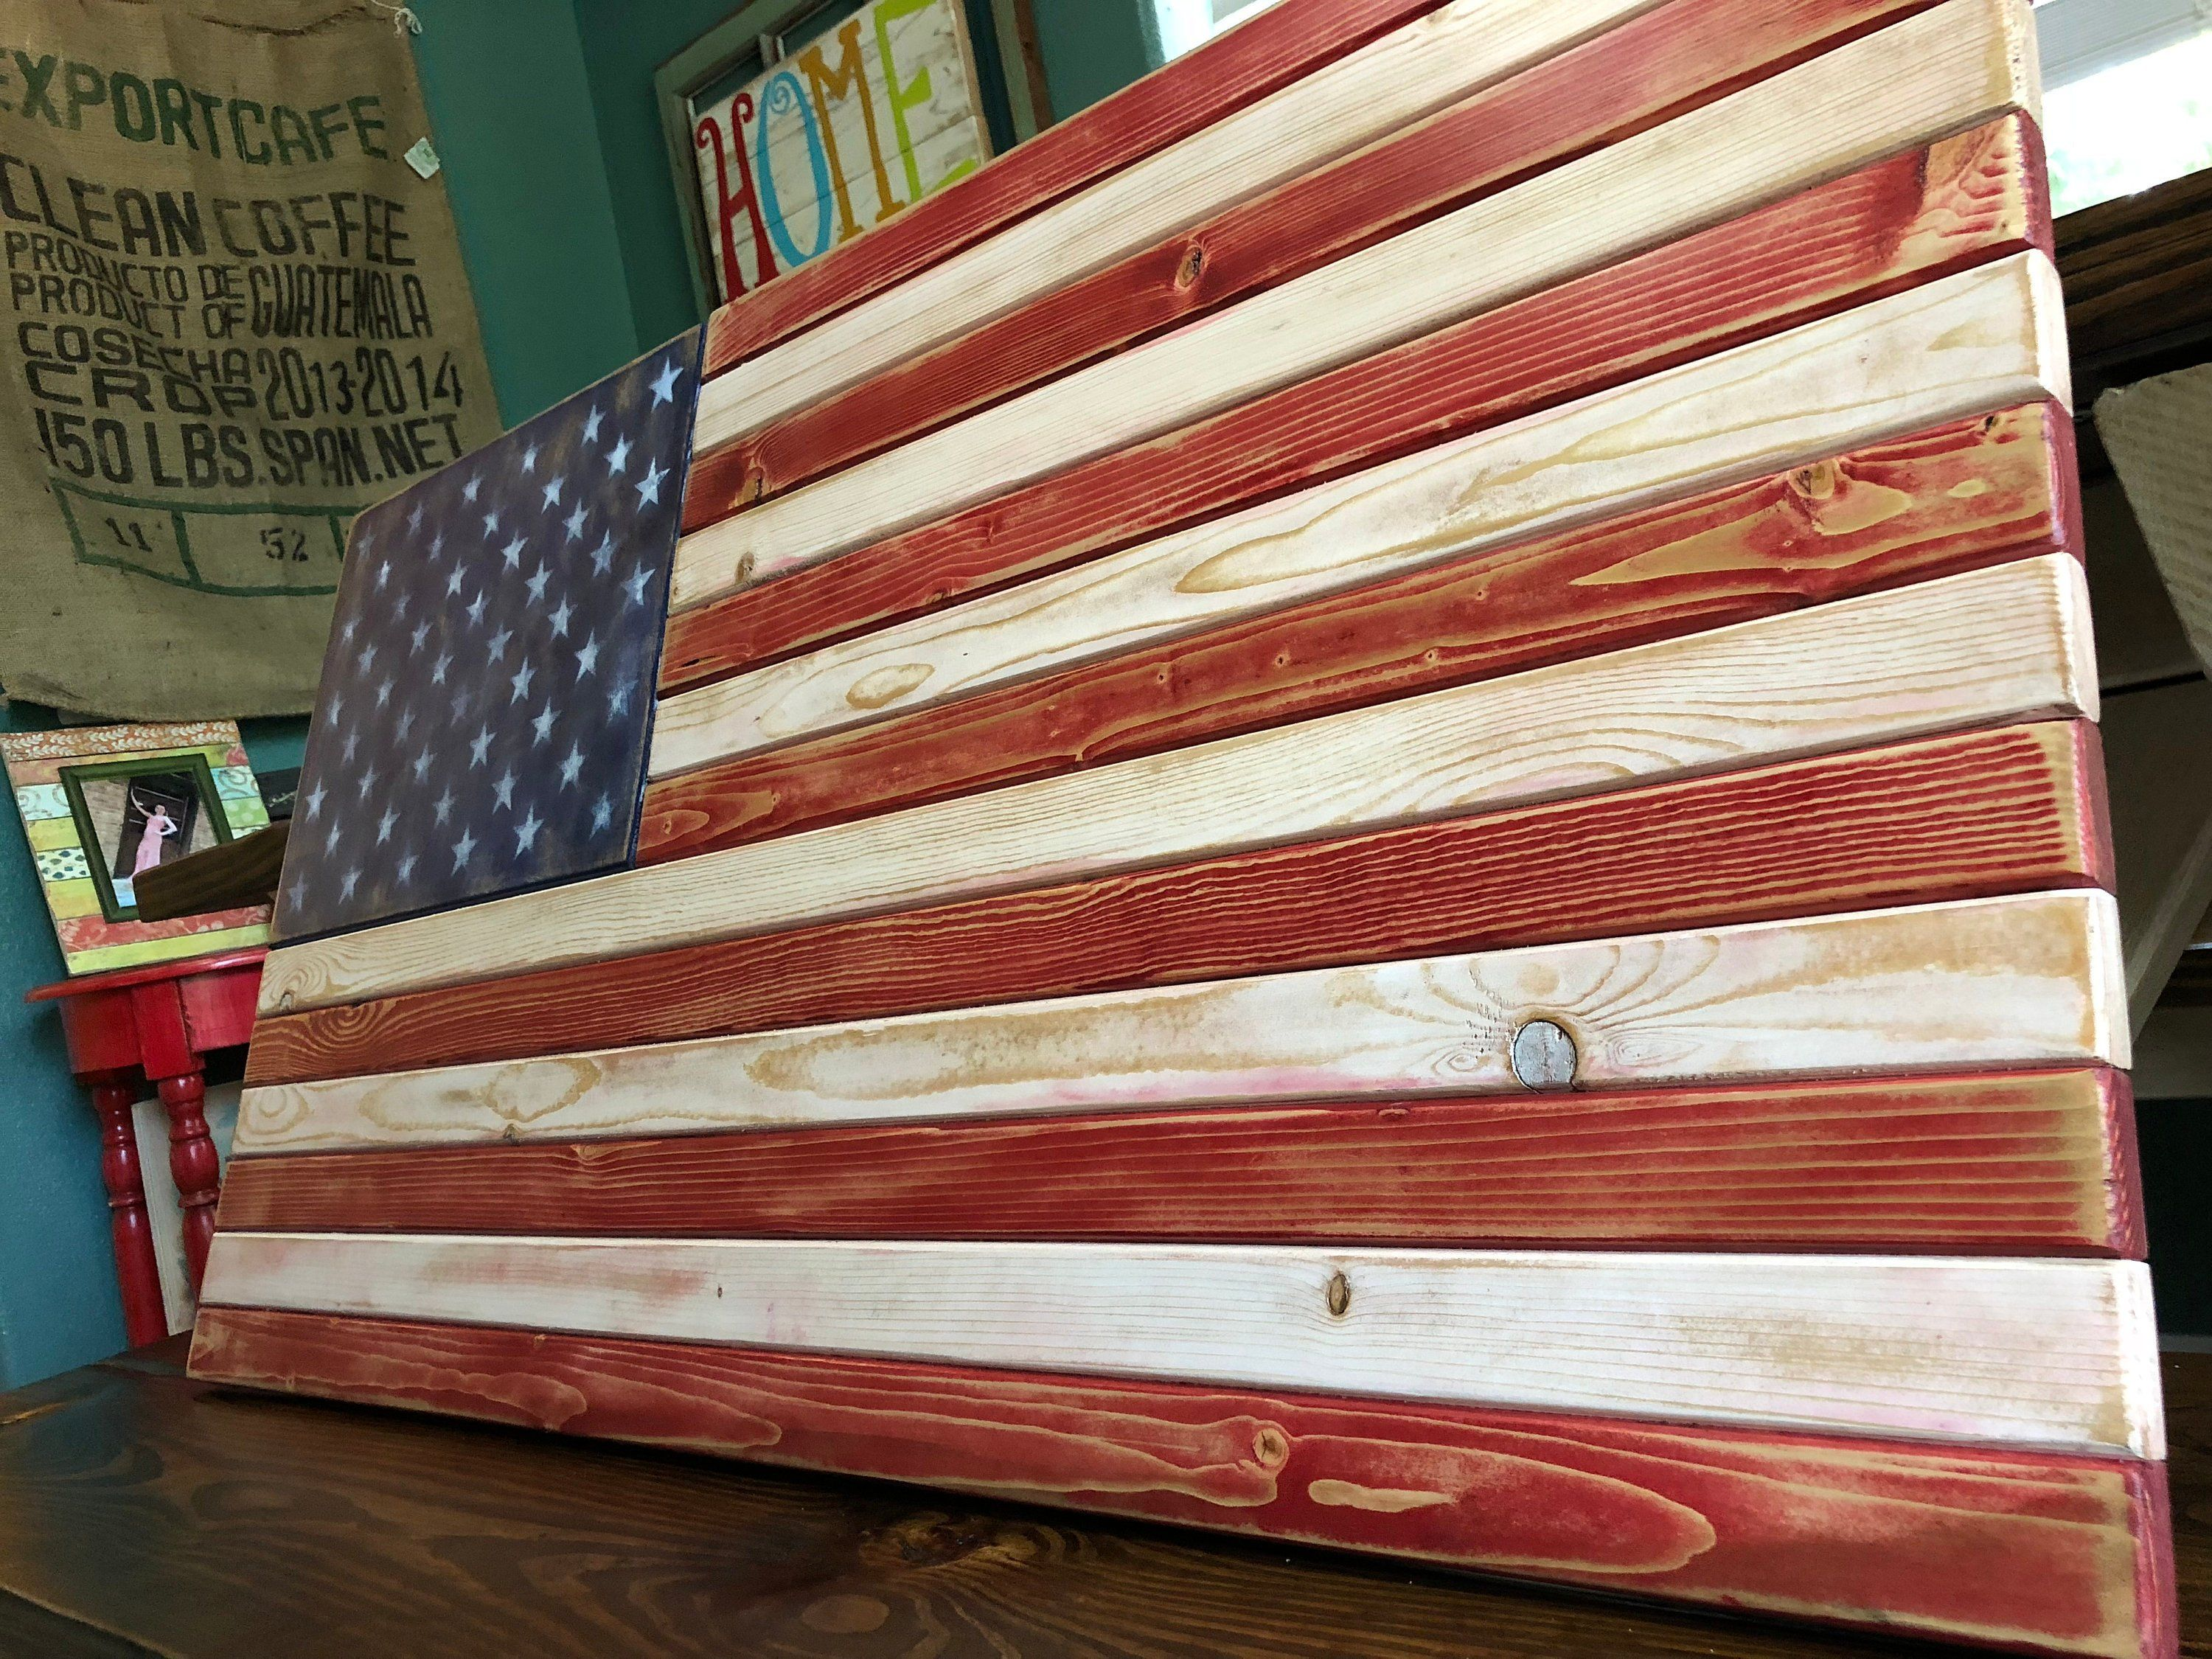 Distressed American Flag Decor Rustic Decor American Flag Office Decor American Flag Decor American Flag Decor Wooden American Flag American Flag Wall Art